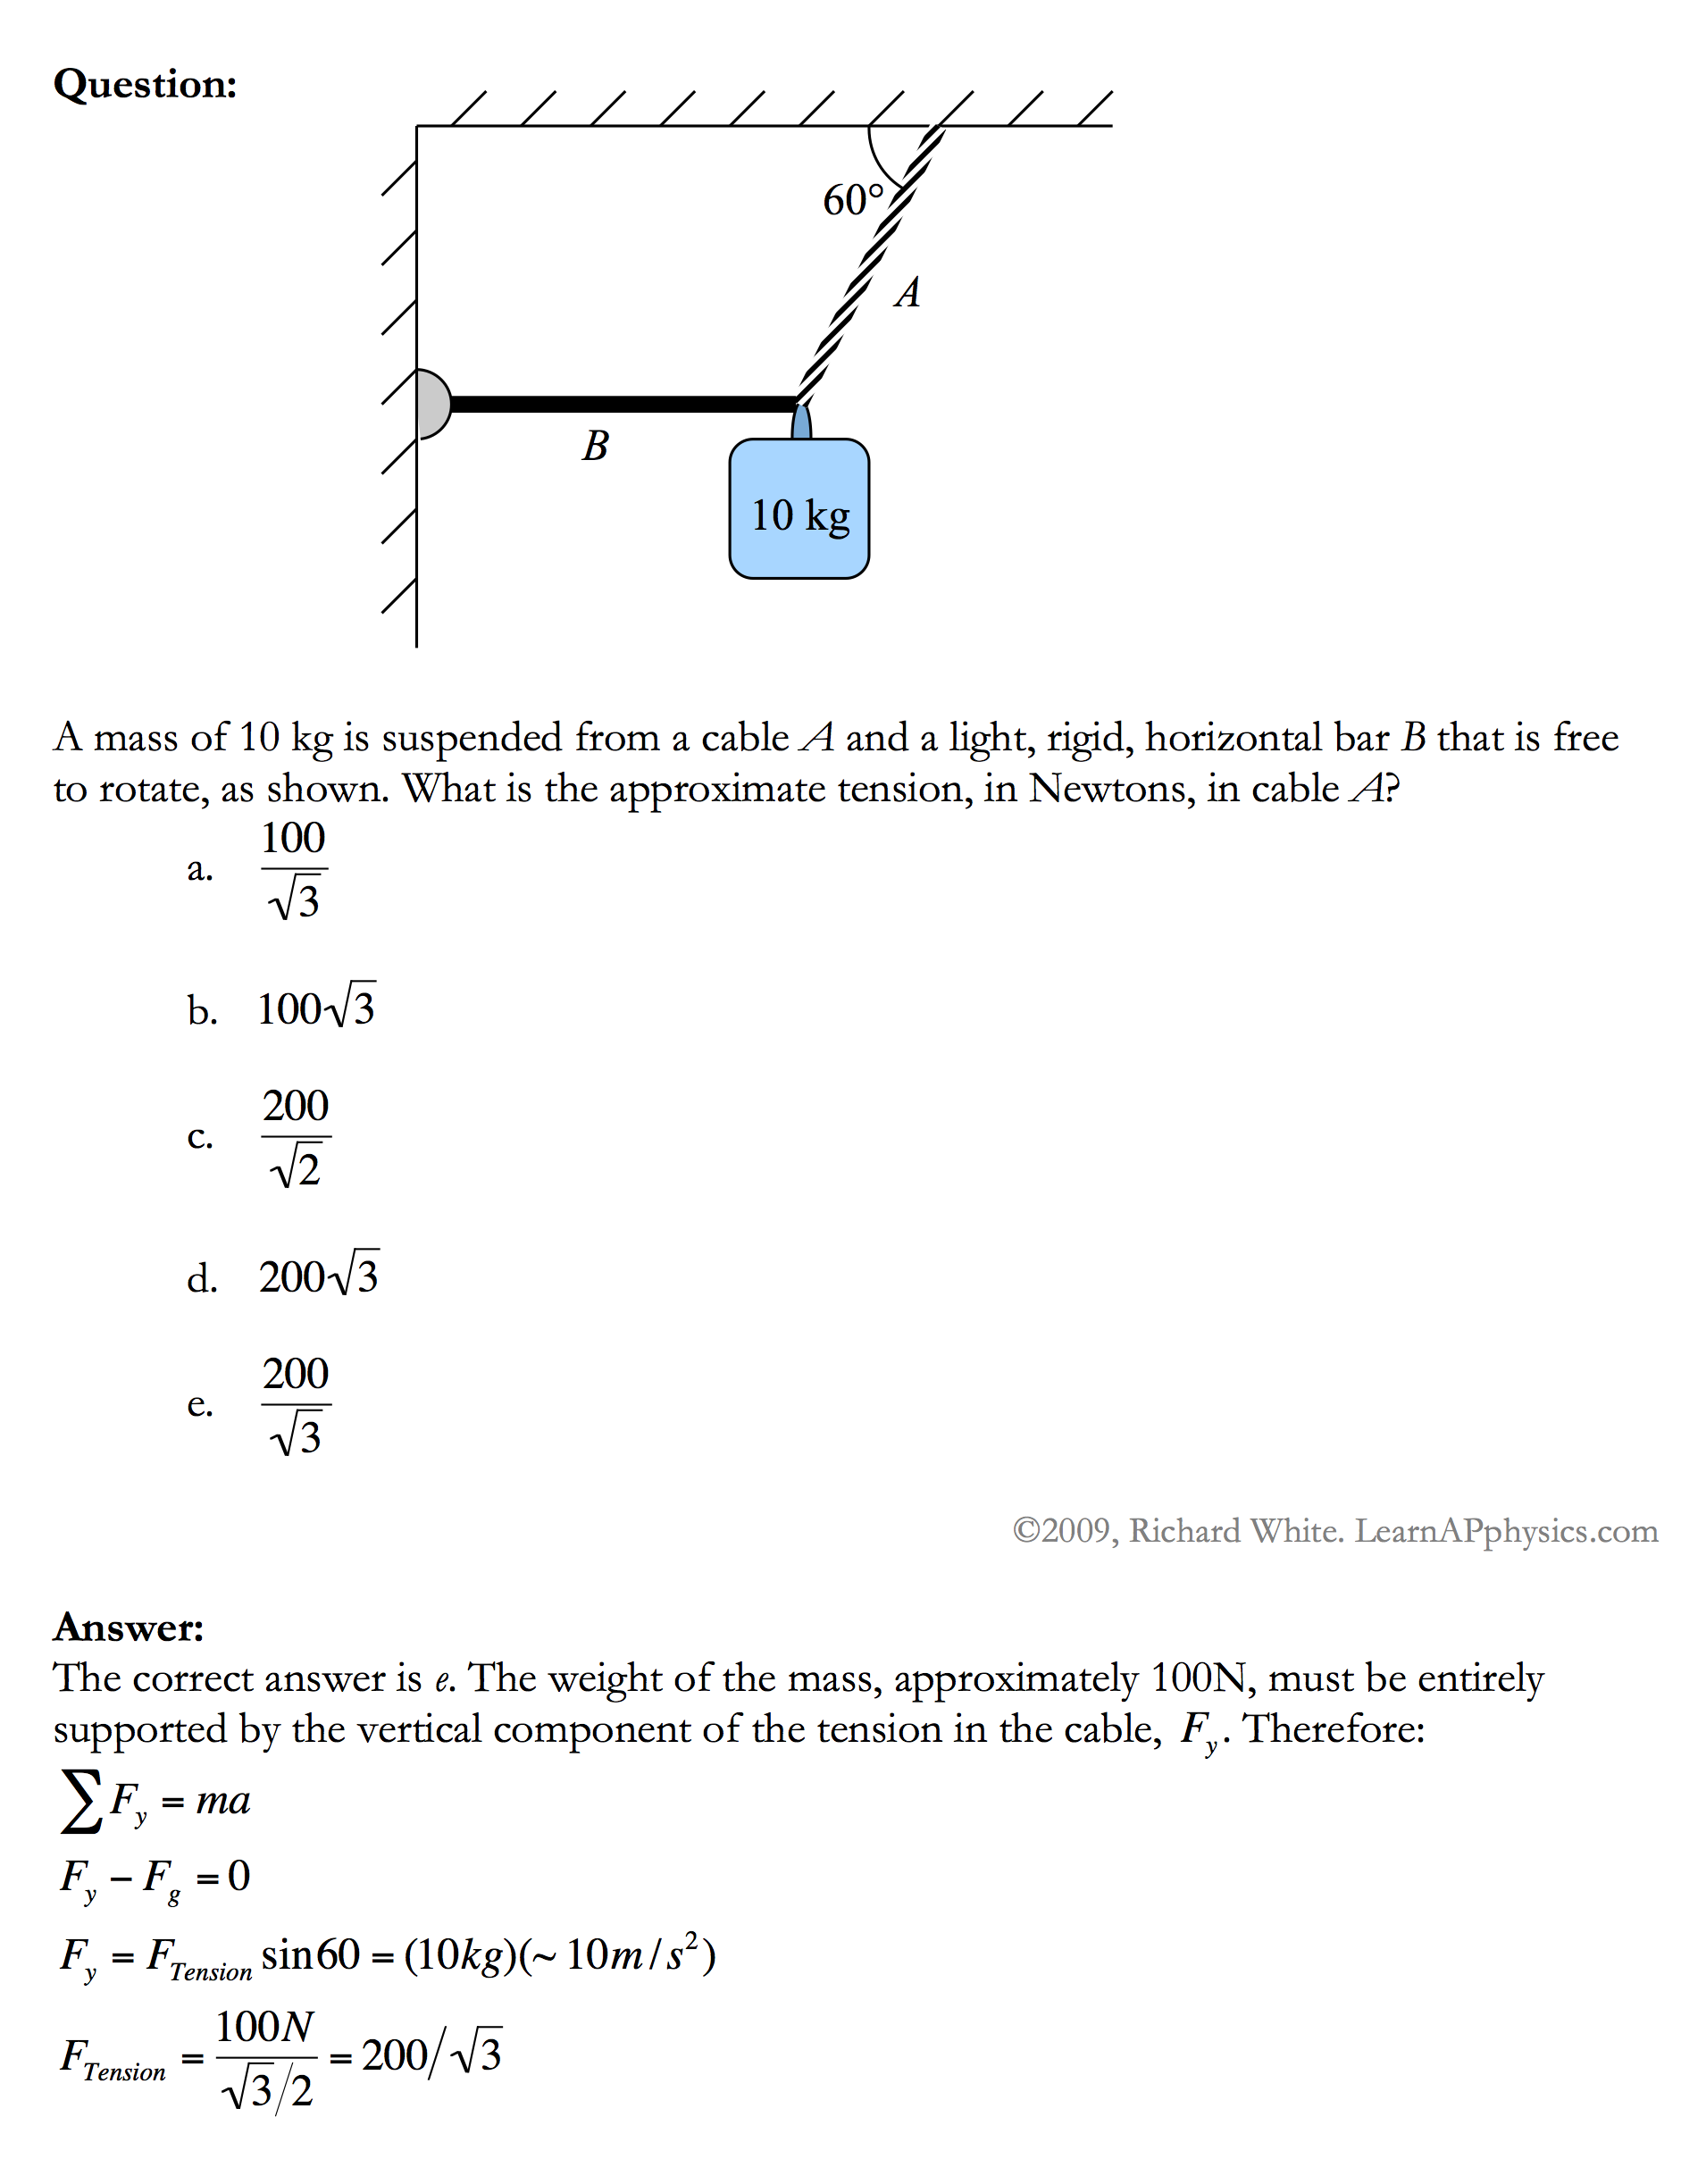 Learn AP Physics - AP Physics 1 & 2 - Newton's Laws of Motion